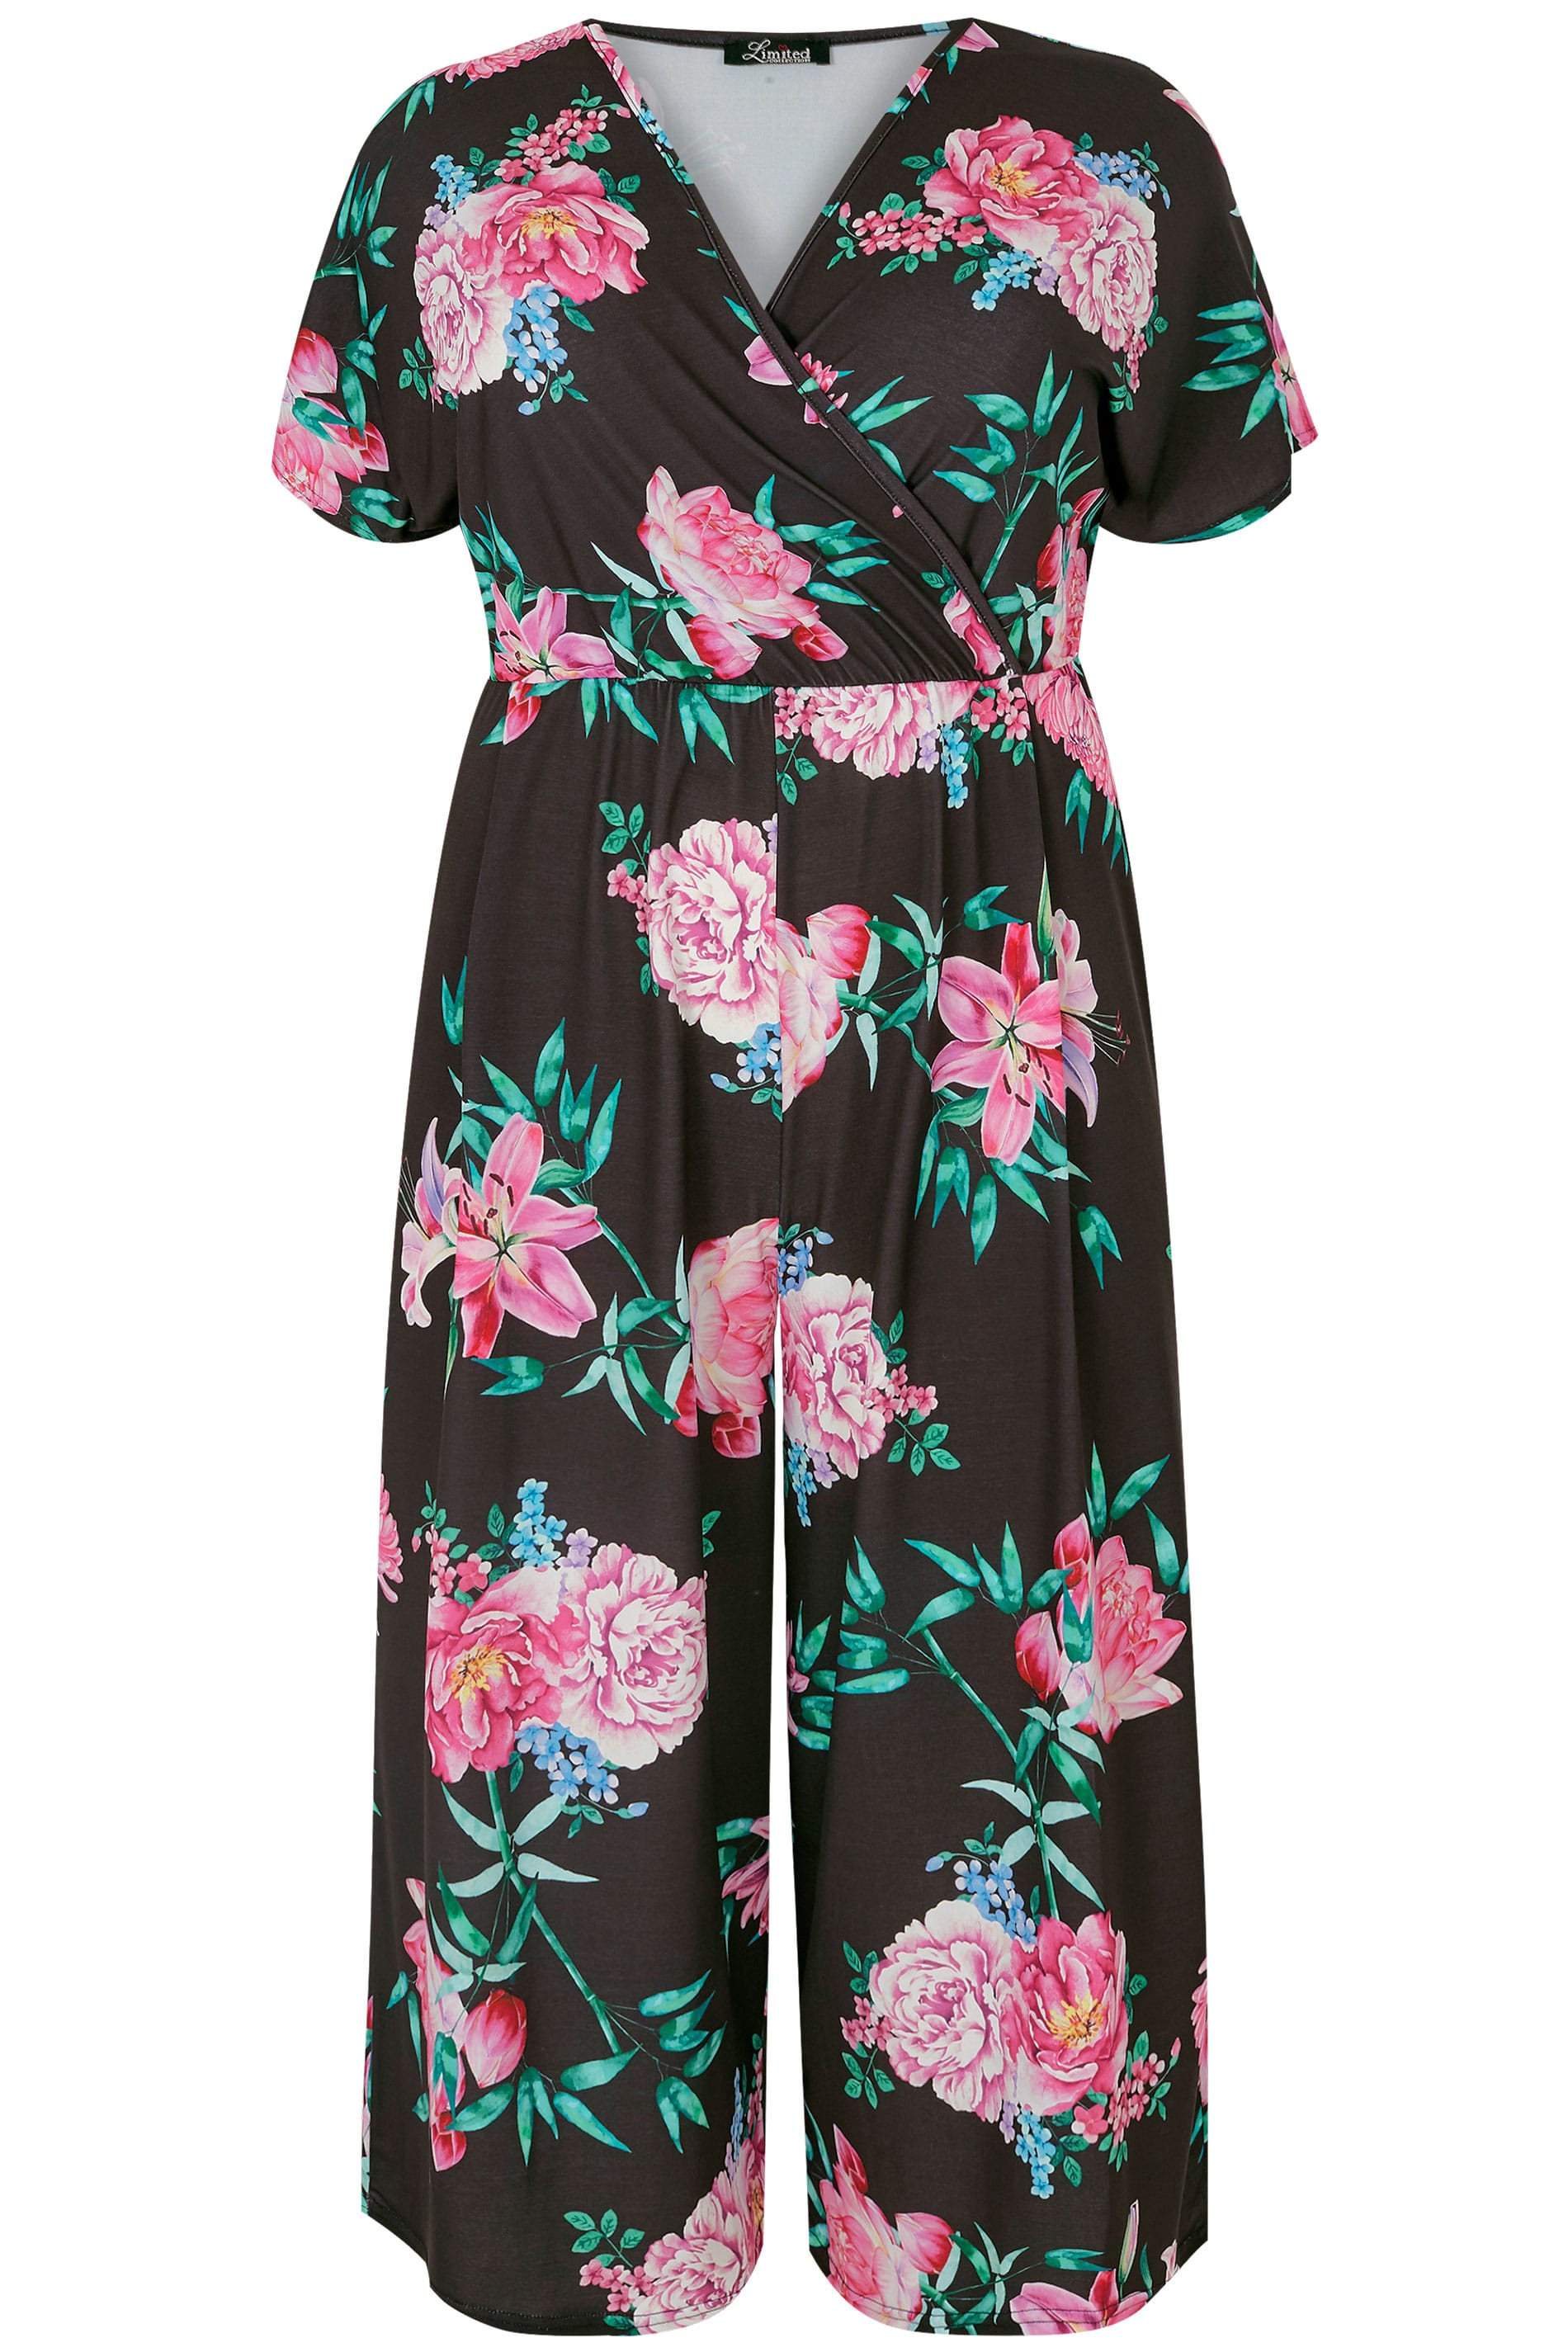 sports shoes fashion style special discount of LIMITED COLLECTION Black & Pink Floral Jumpsuit